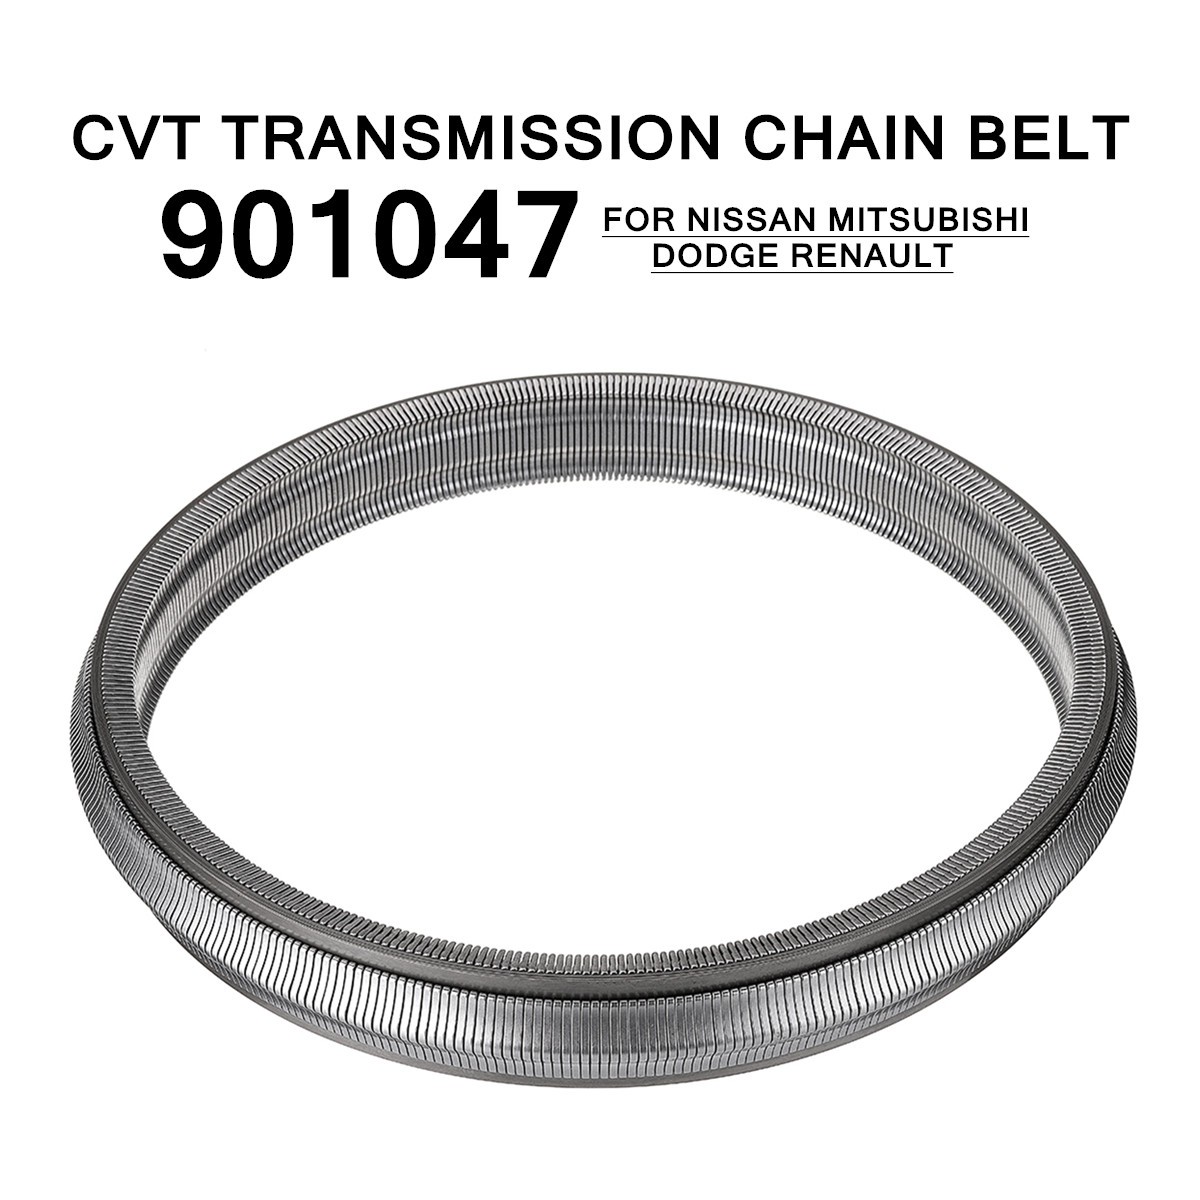 CVT Transmission Drive Chain Belt Fit for Nissan/Dodge/Mitsubishi-Renault 901047 Automatic Transmission & Parts Diameter 24cm жидкость для cvt mitsubishi synt fluid cvt j4 0 946л mz320185